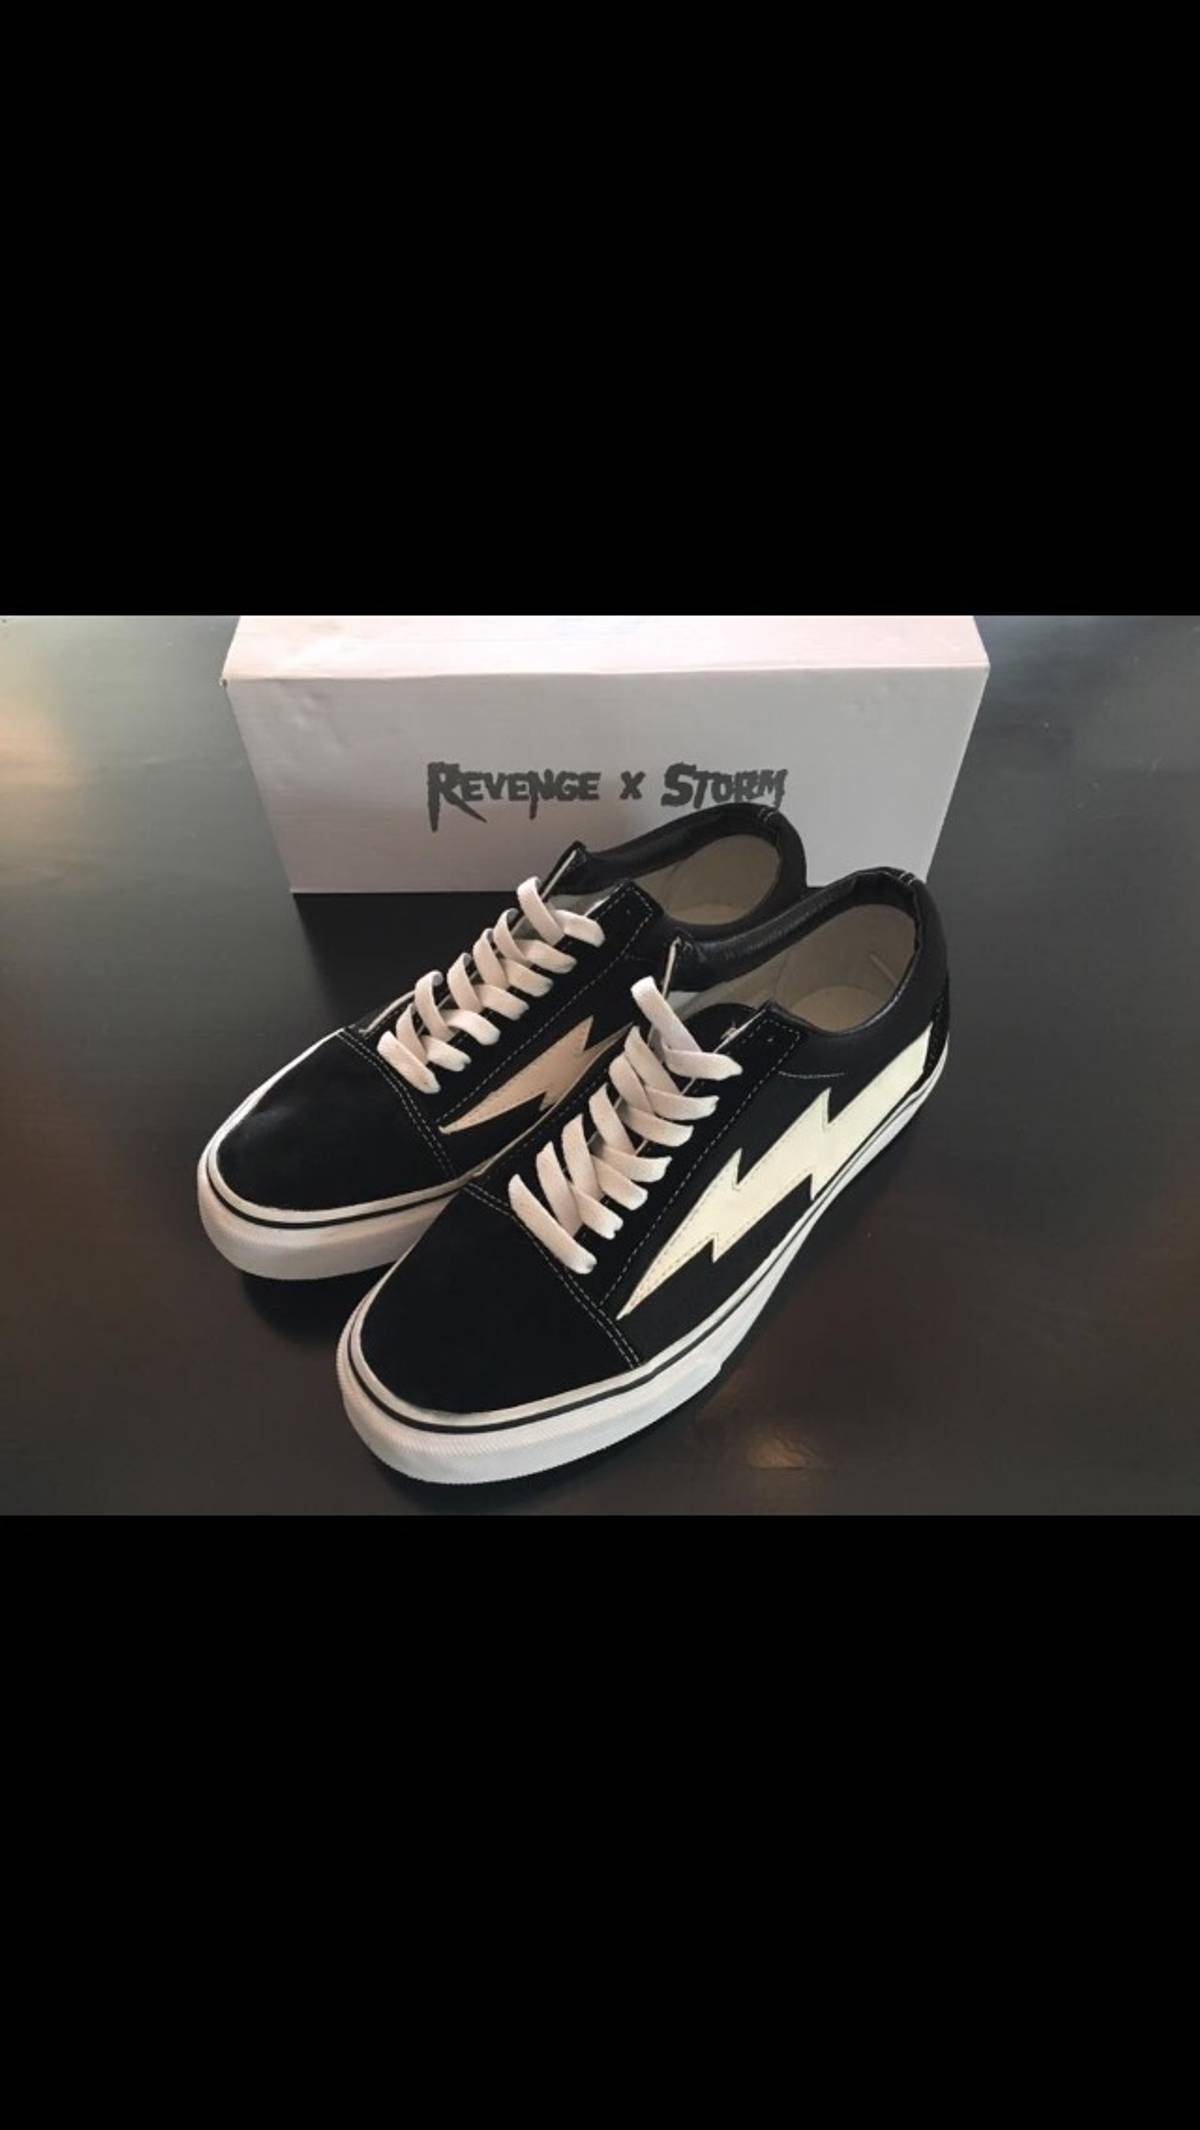 d1c633c3ccd72f Vans Revenge x Storm Vol.1 Size 9 - Low-Top Sneakers for Sale - Grailed